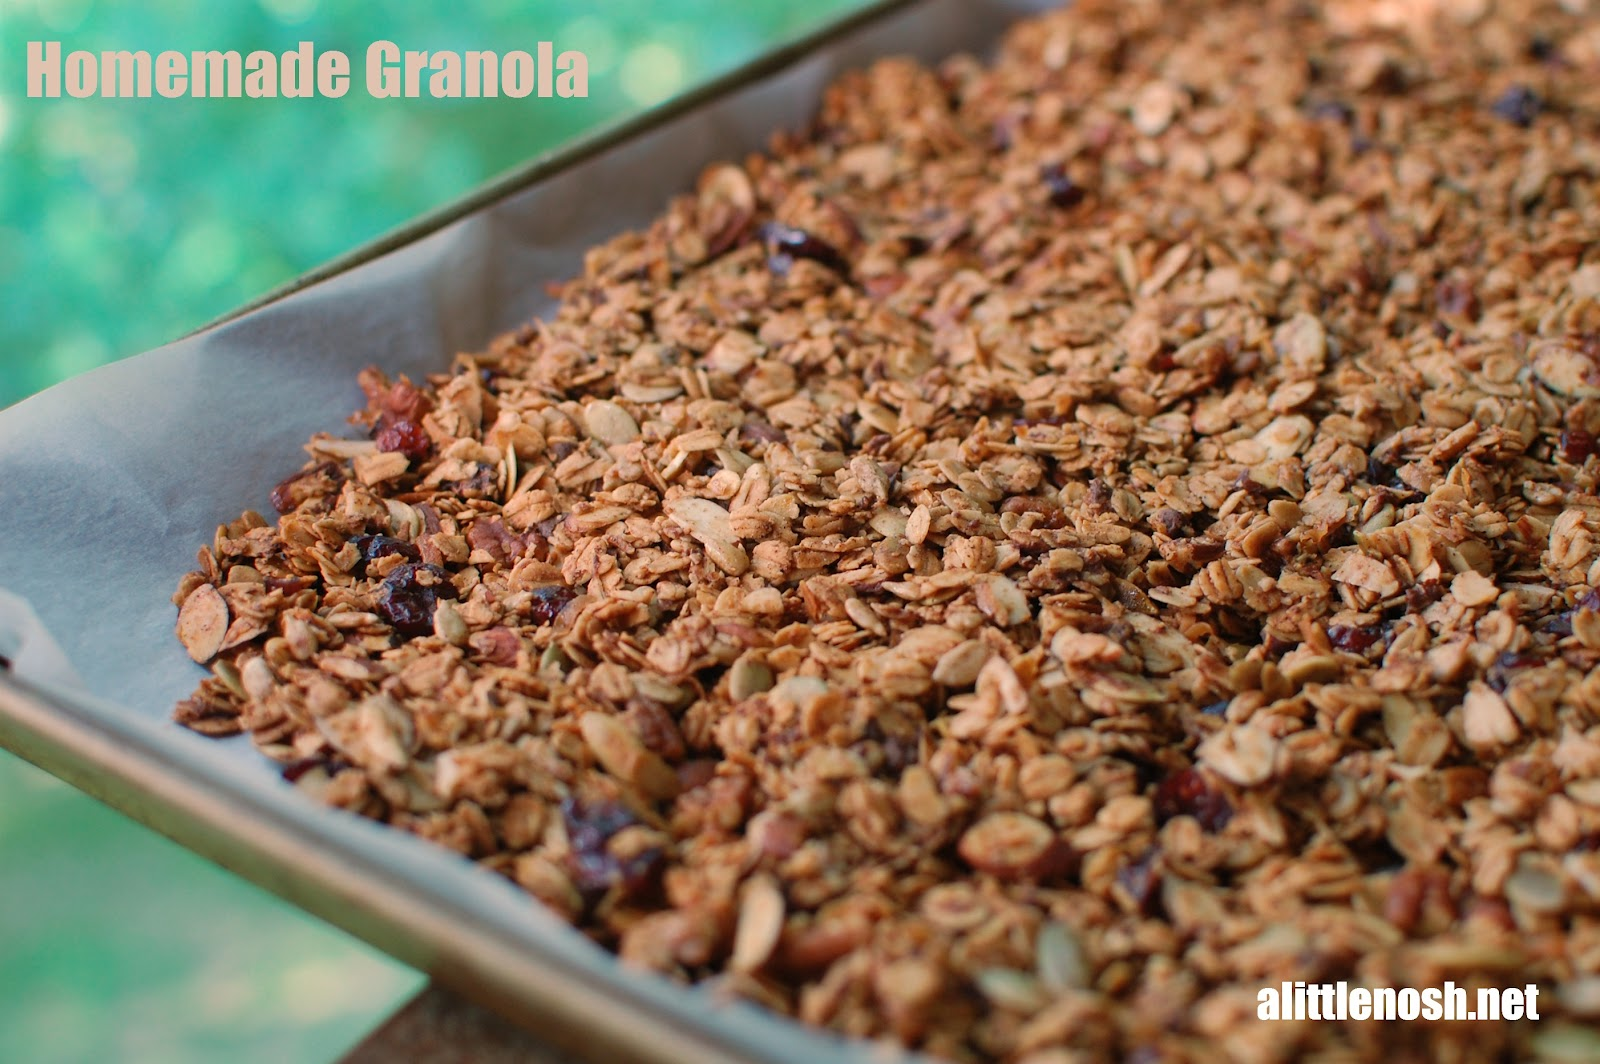 ... get enough homemade granola these days. It's so easy to make